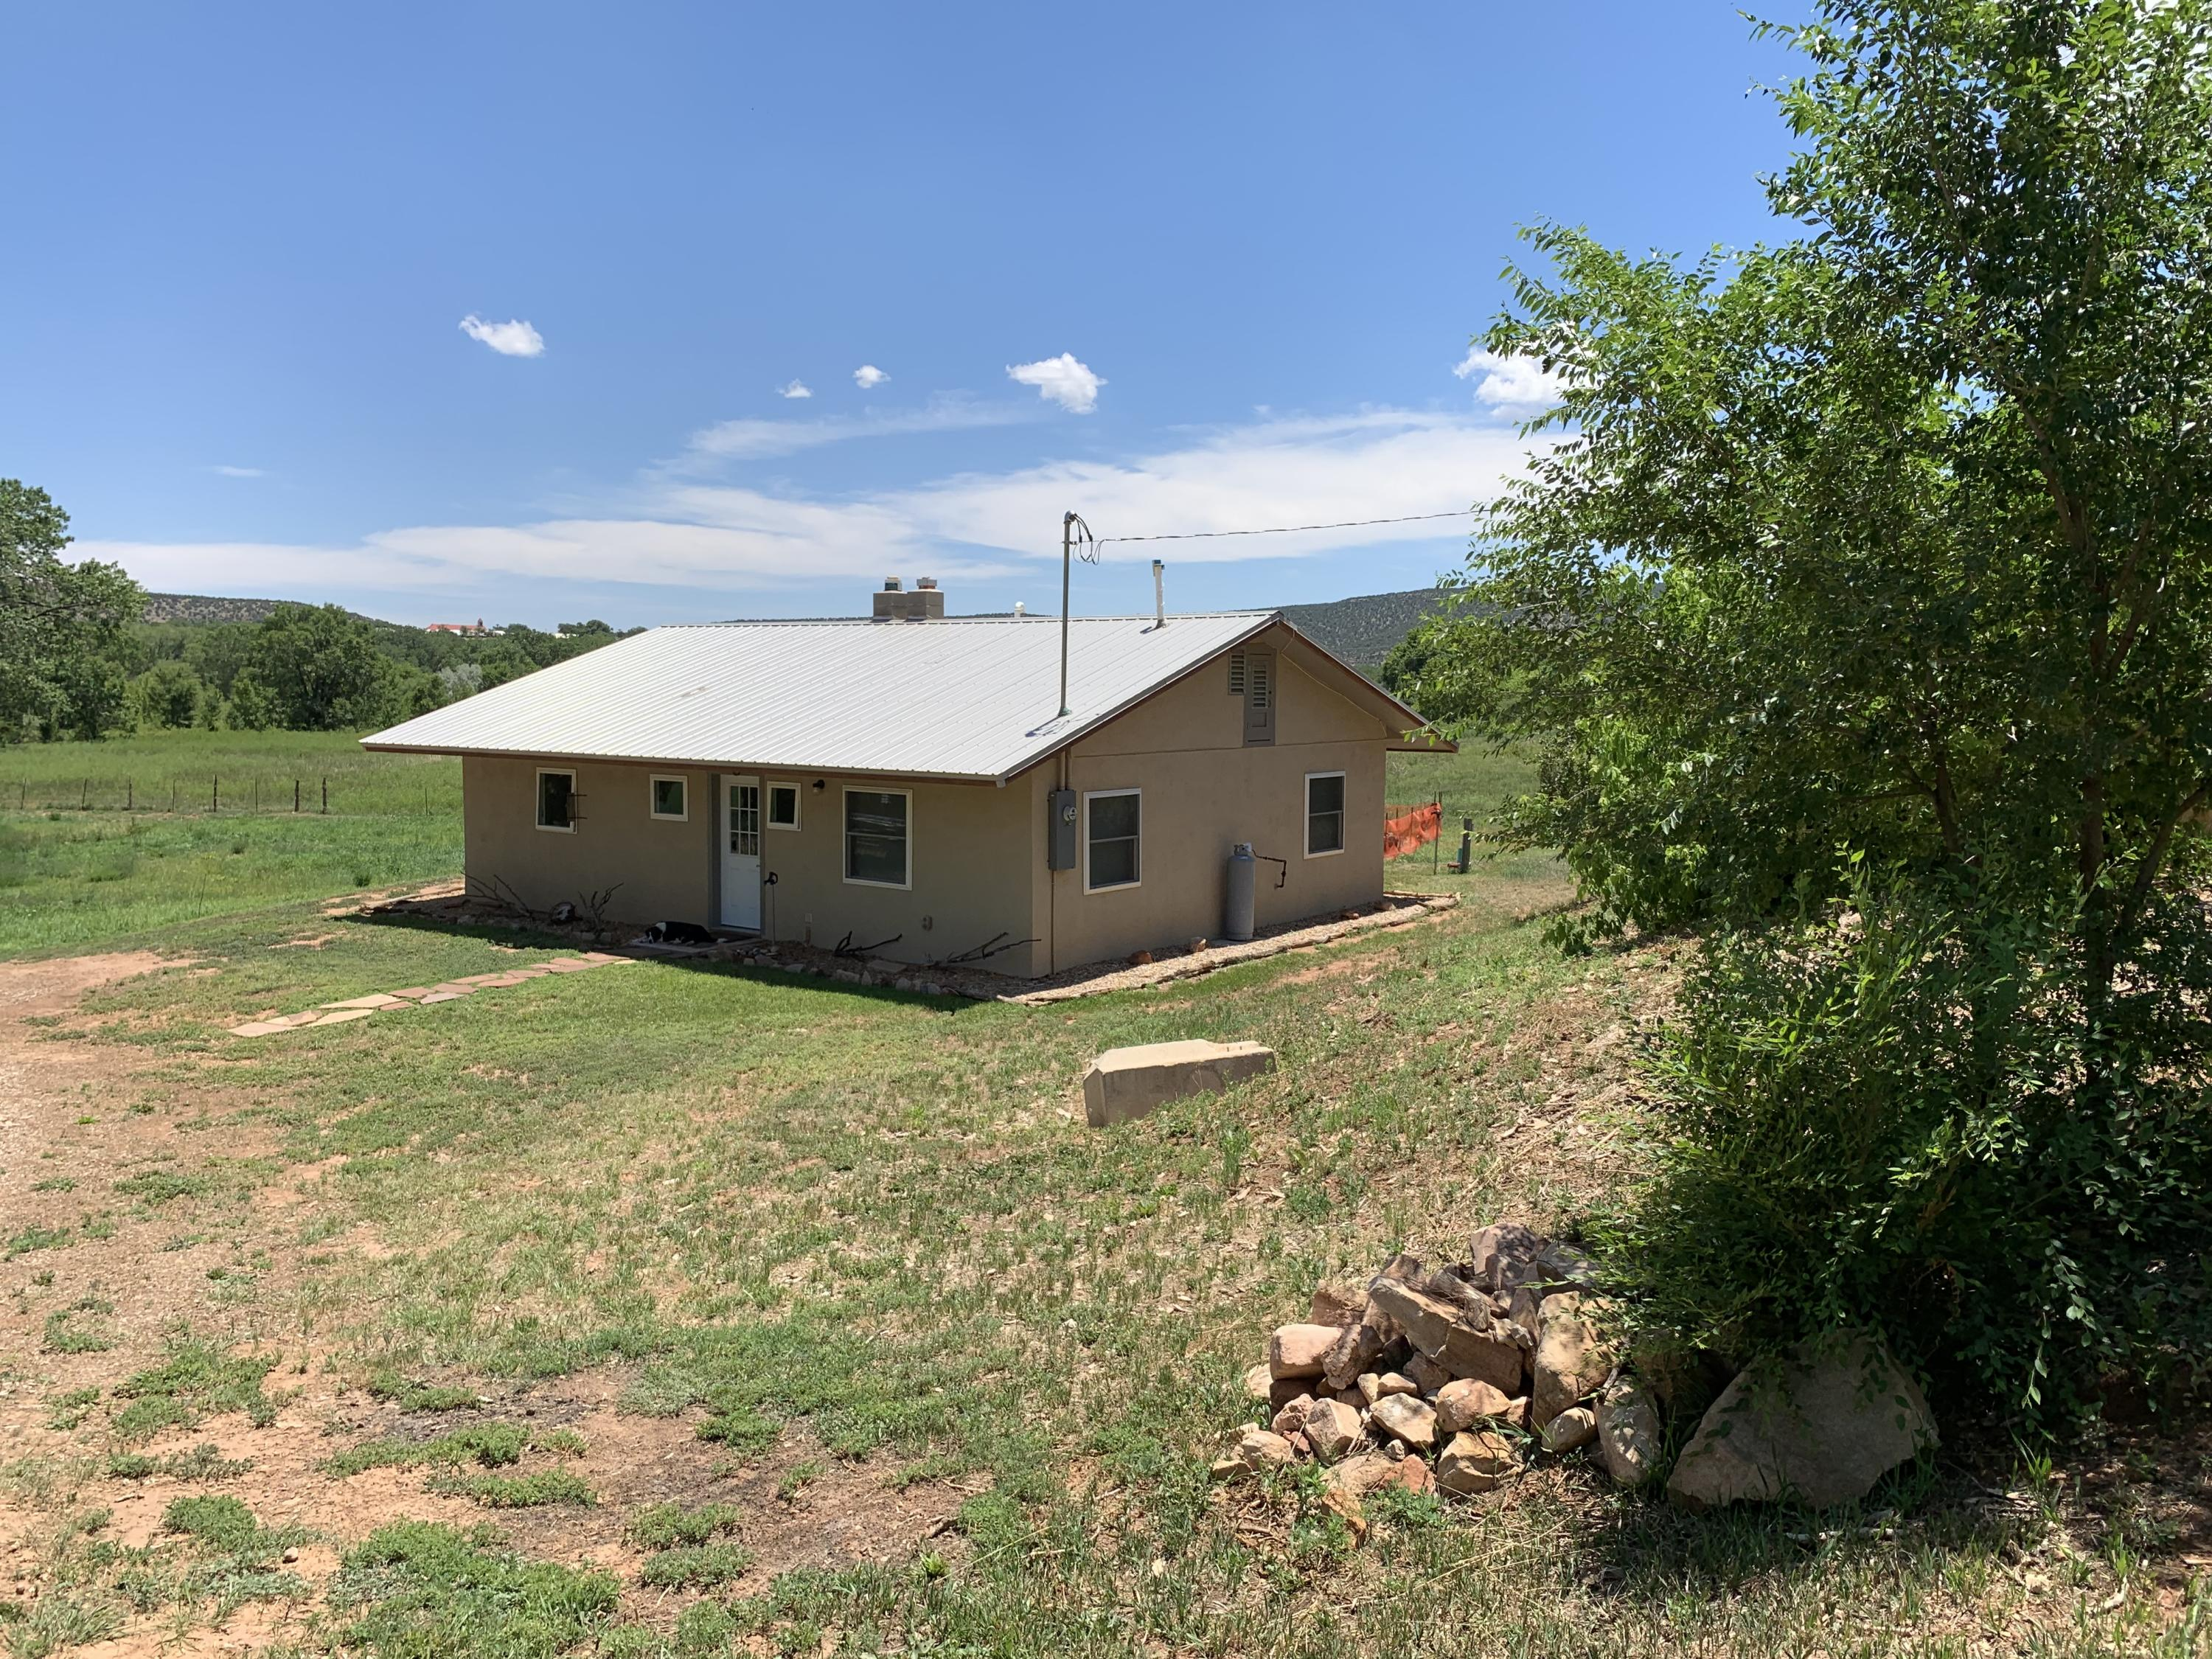 60 CR B29C, Villanueva, NM 87583 - Villanueva, NM real estate listing